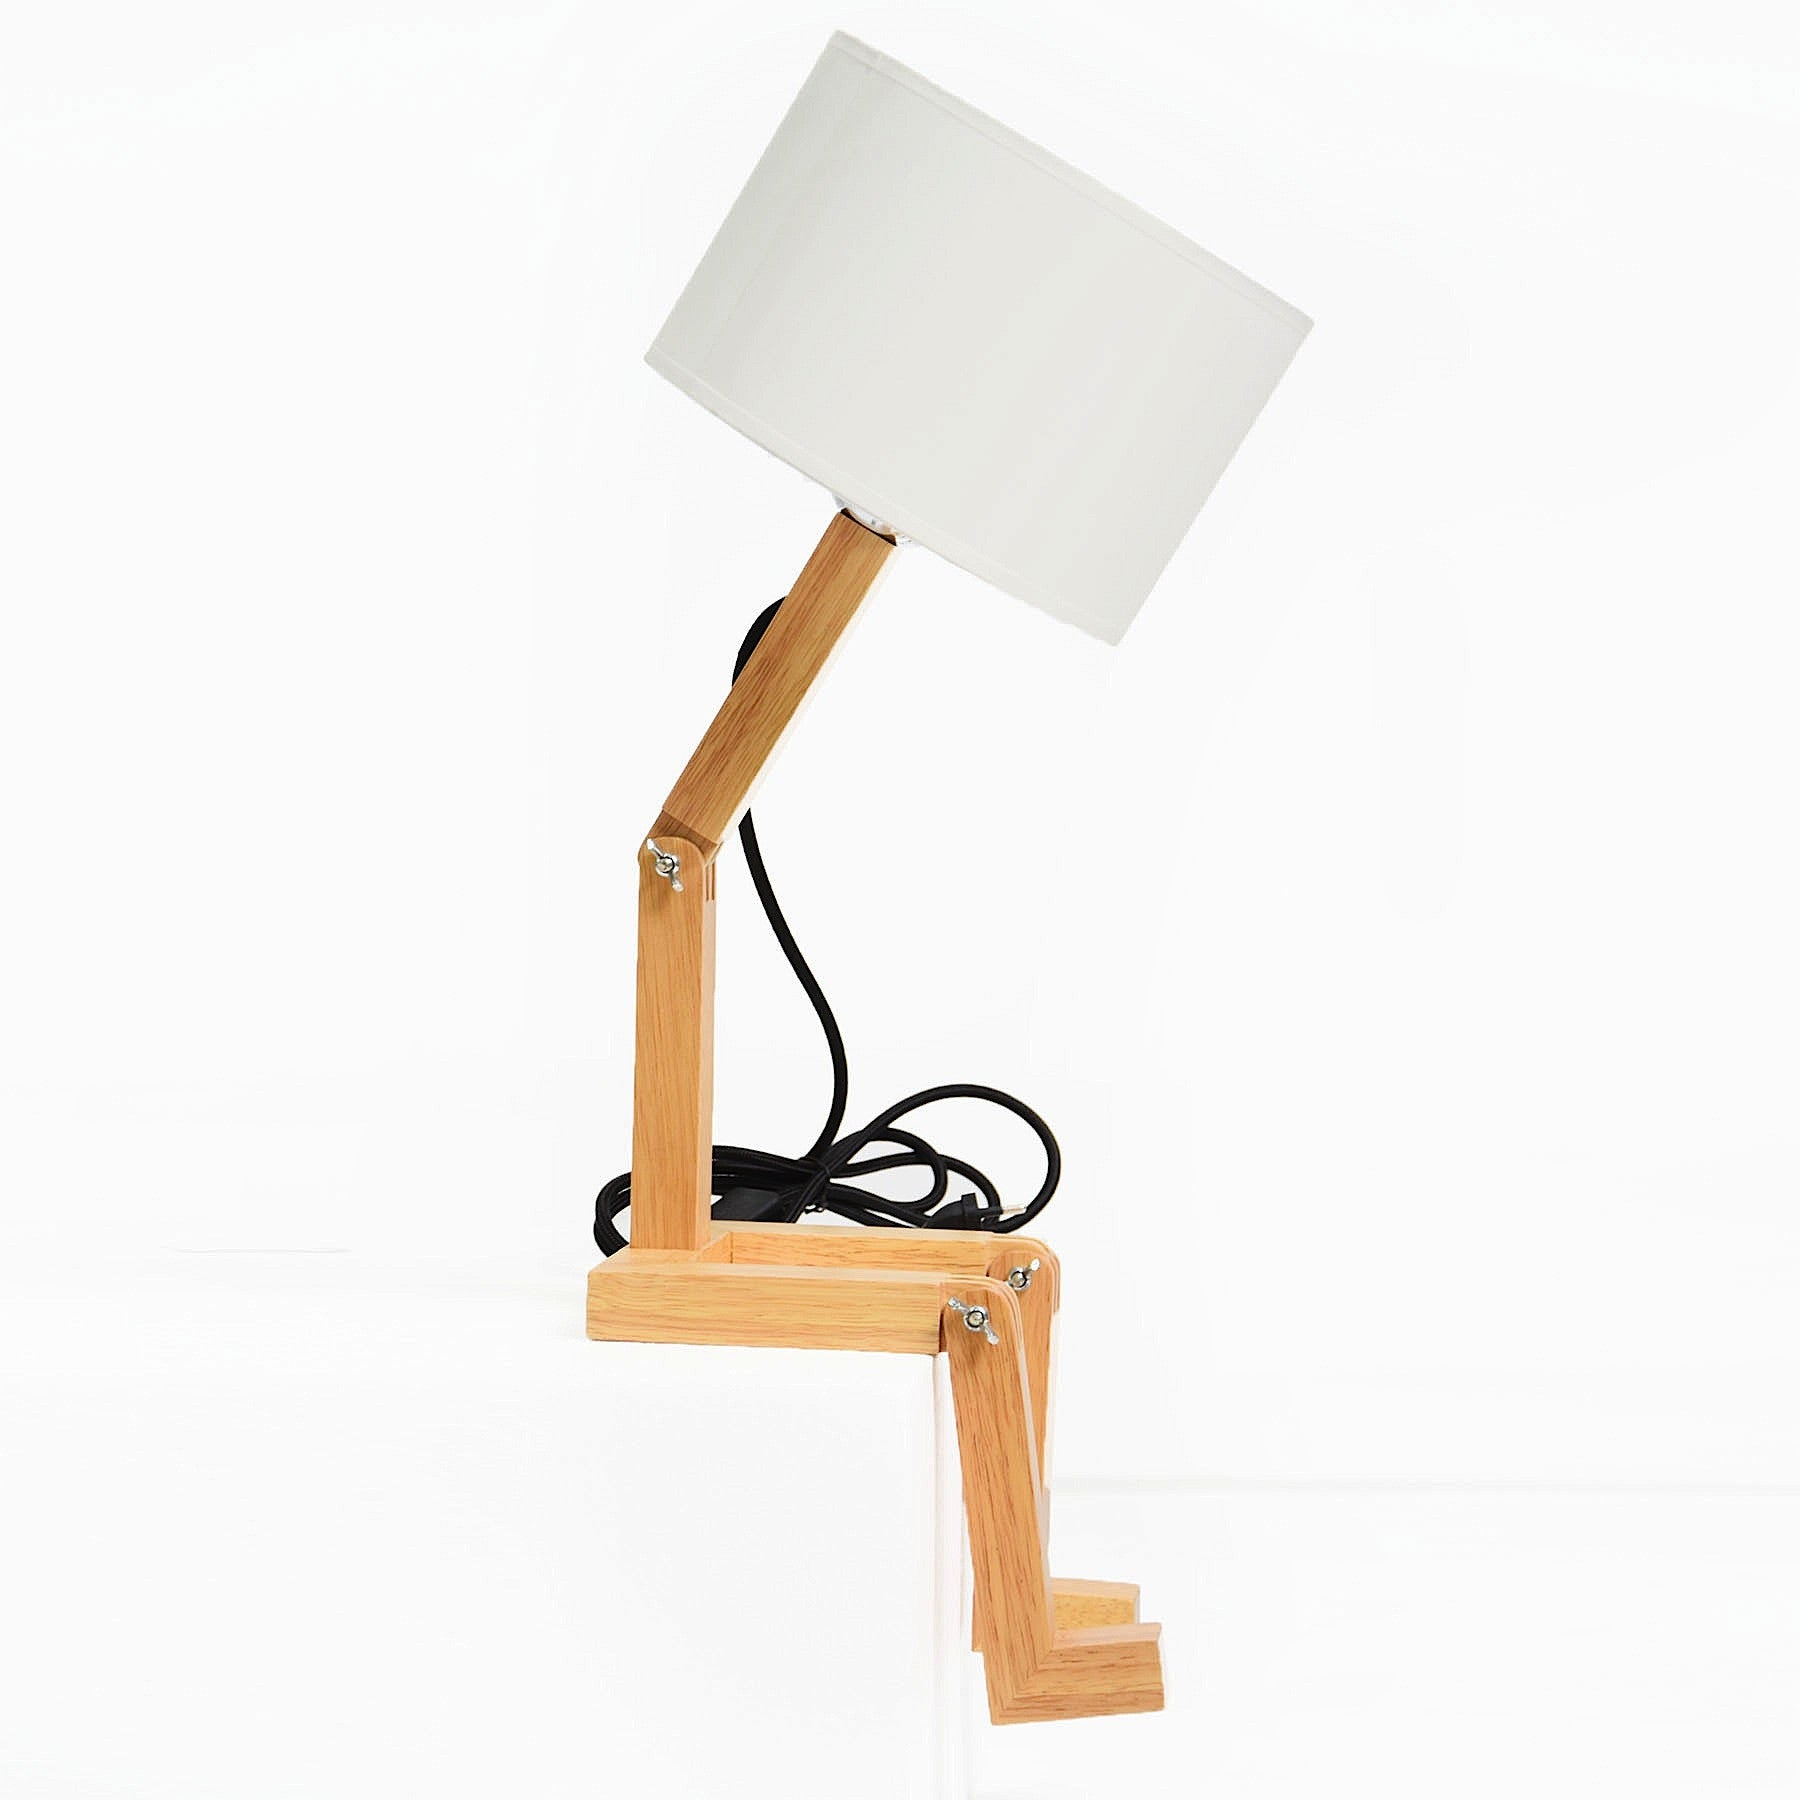 Desk\table Lamp - Mr.Lonley Table Lamp L0090